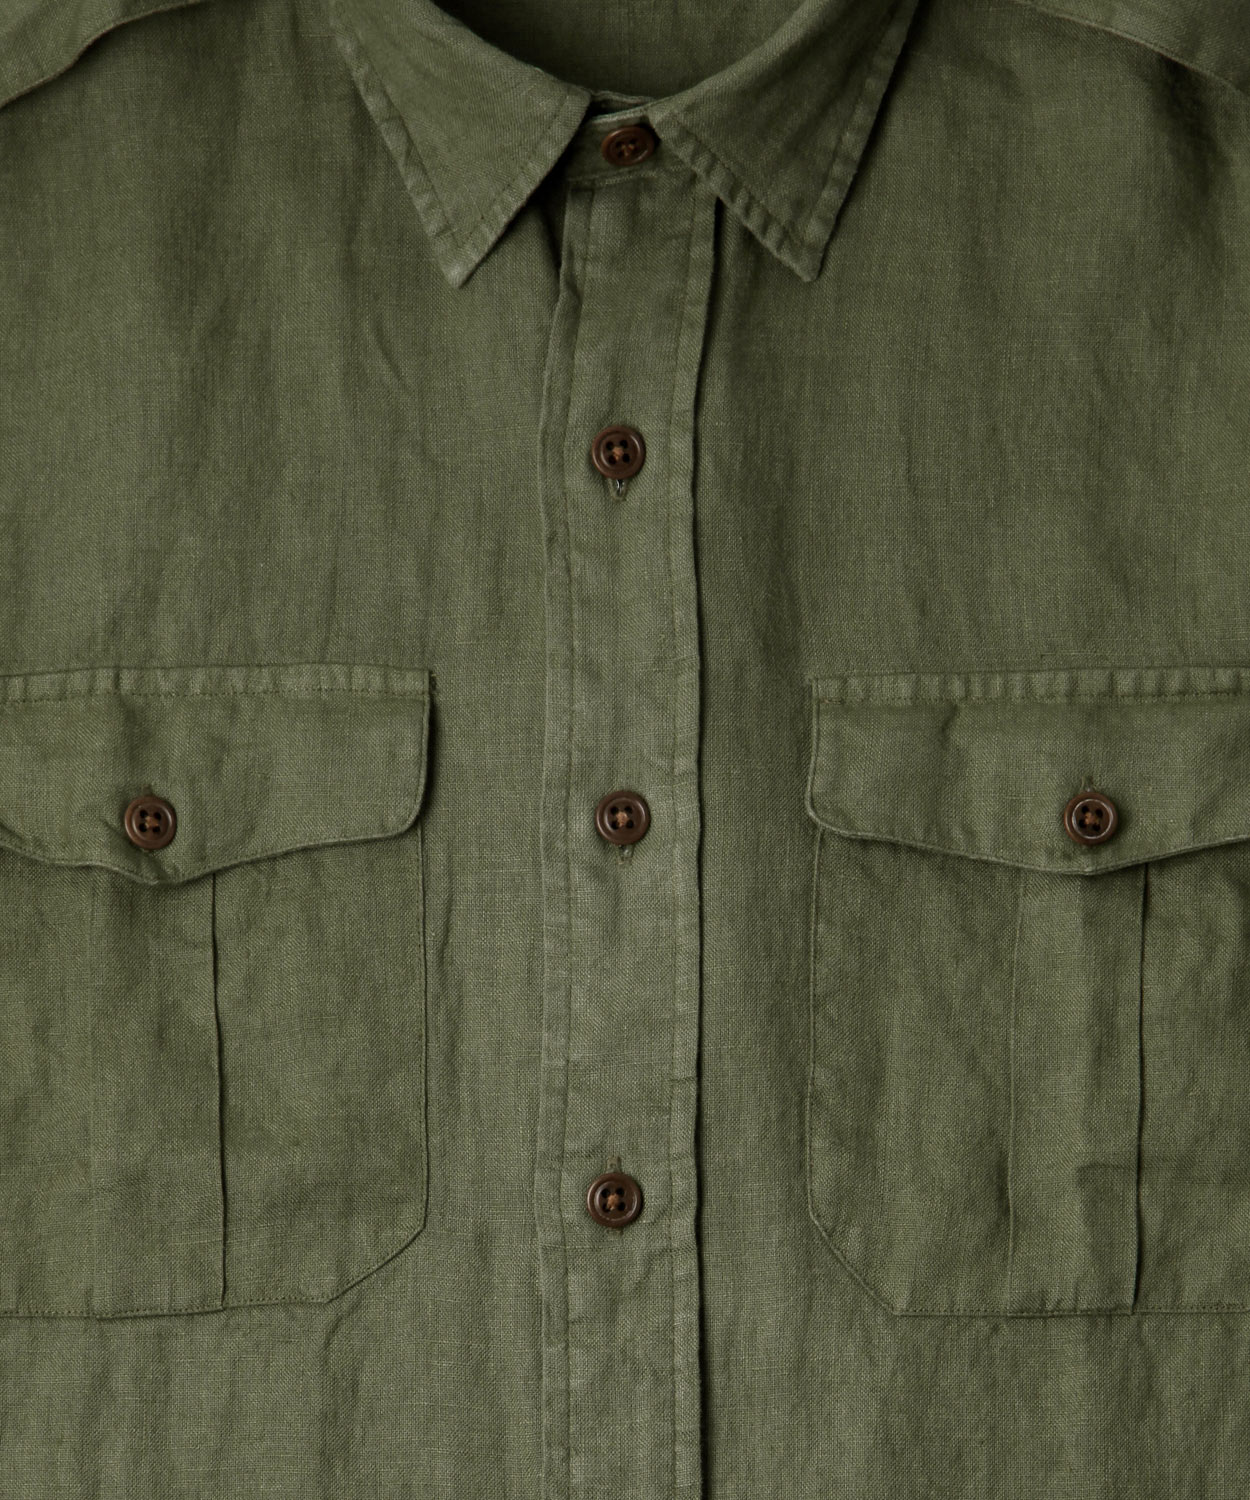 Polo ralph lauren Olive Linen Shirt in Green for Men  Lyst